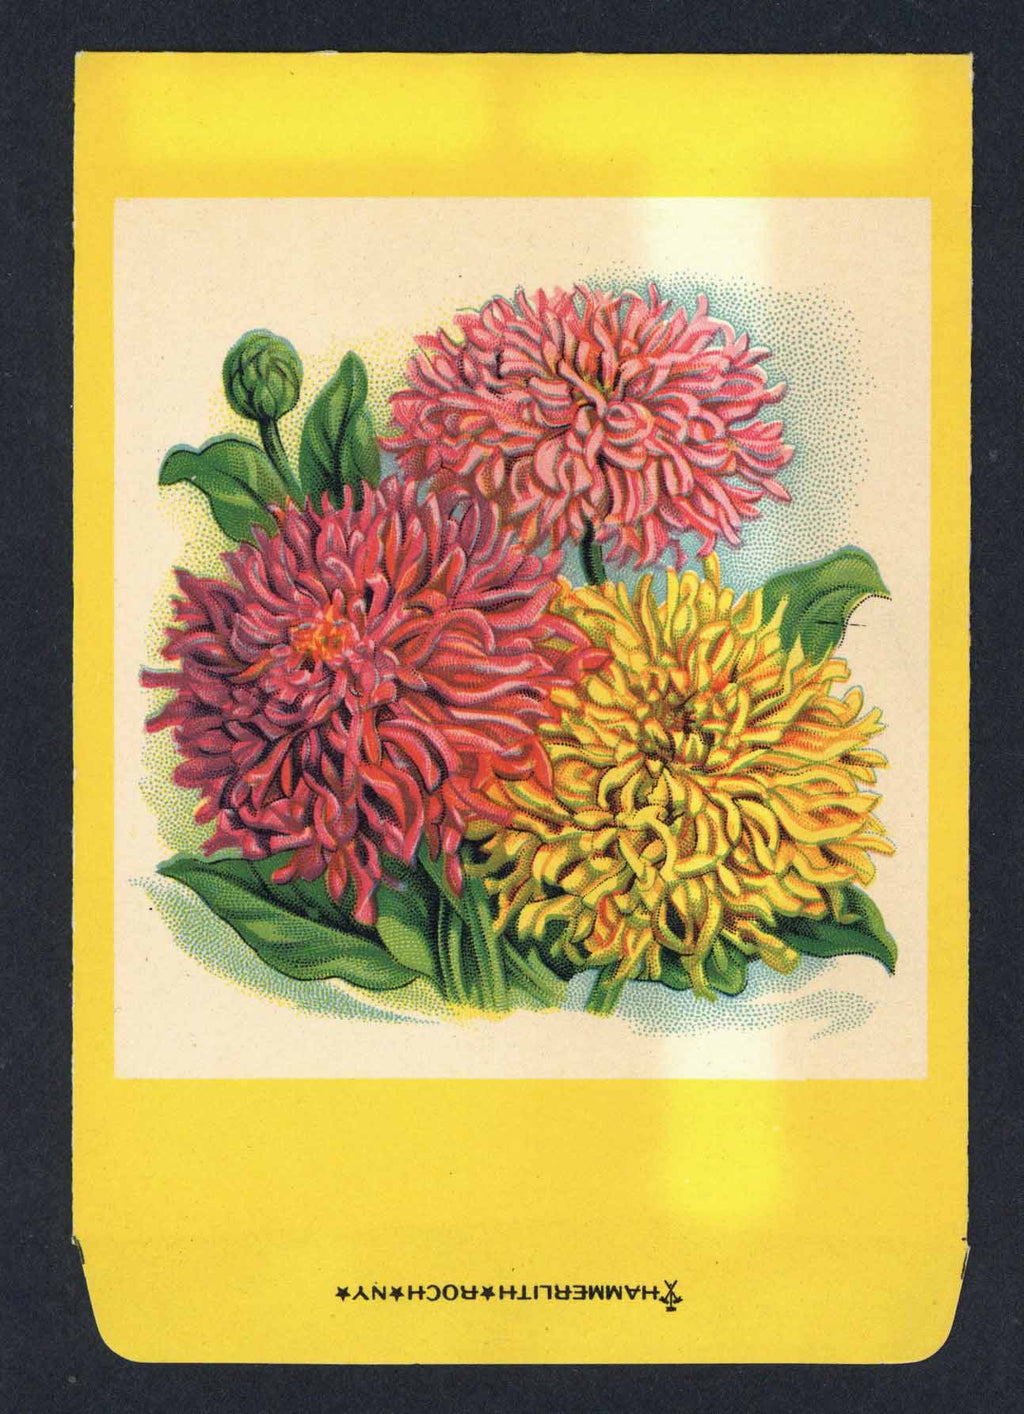 Zinnia Antique Stock Seed Packet, Hammerlith